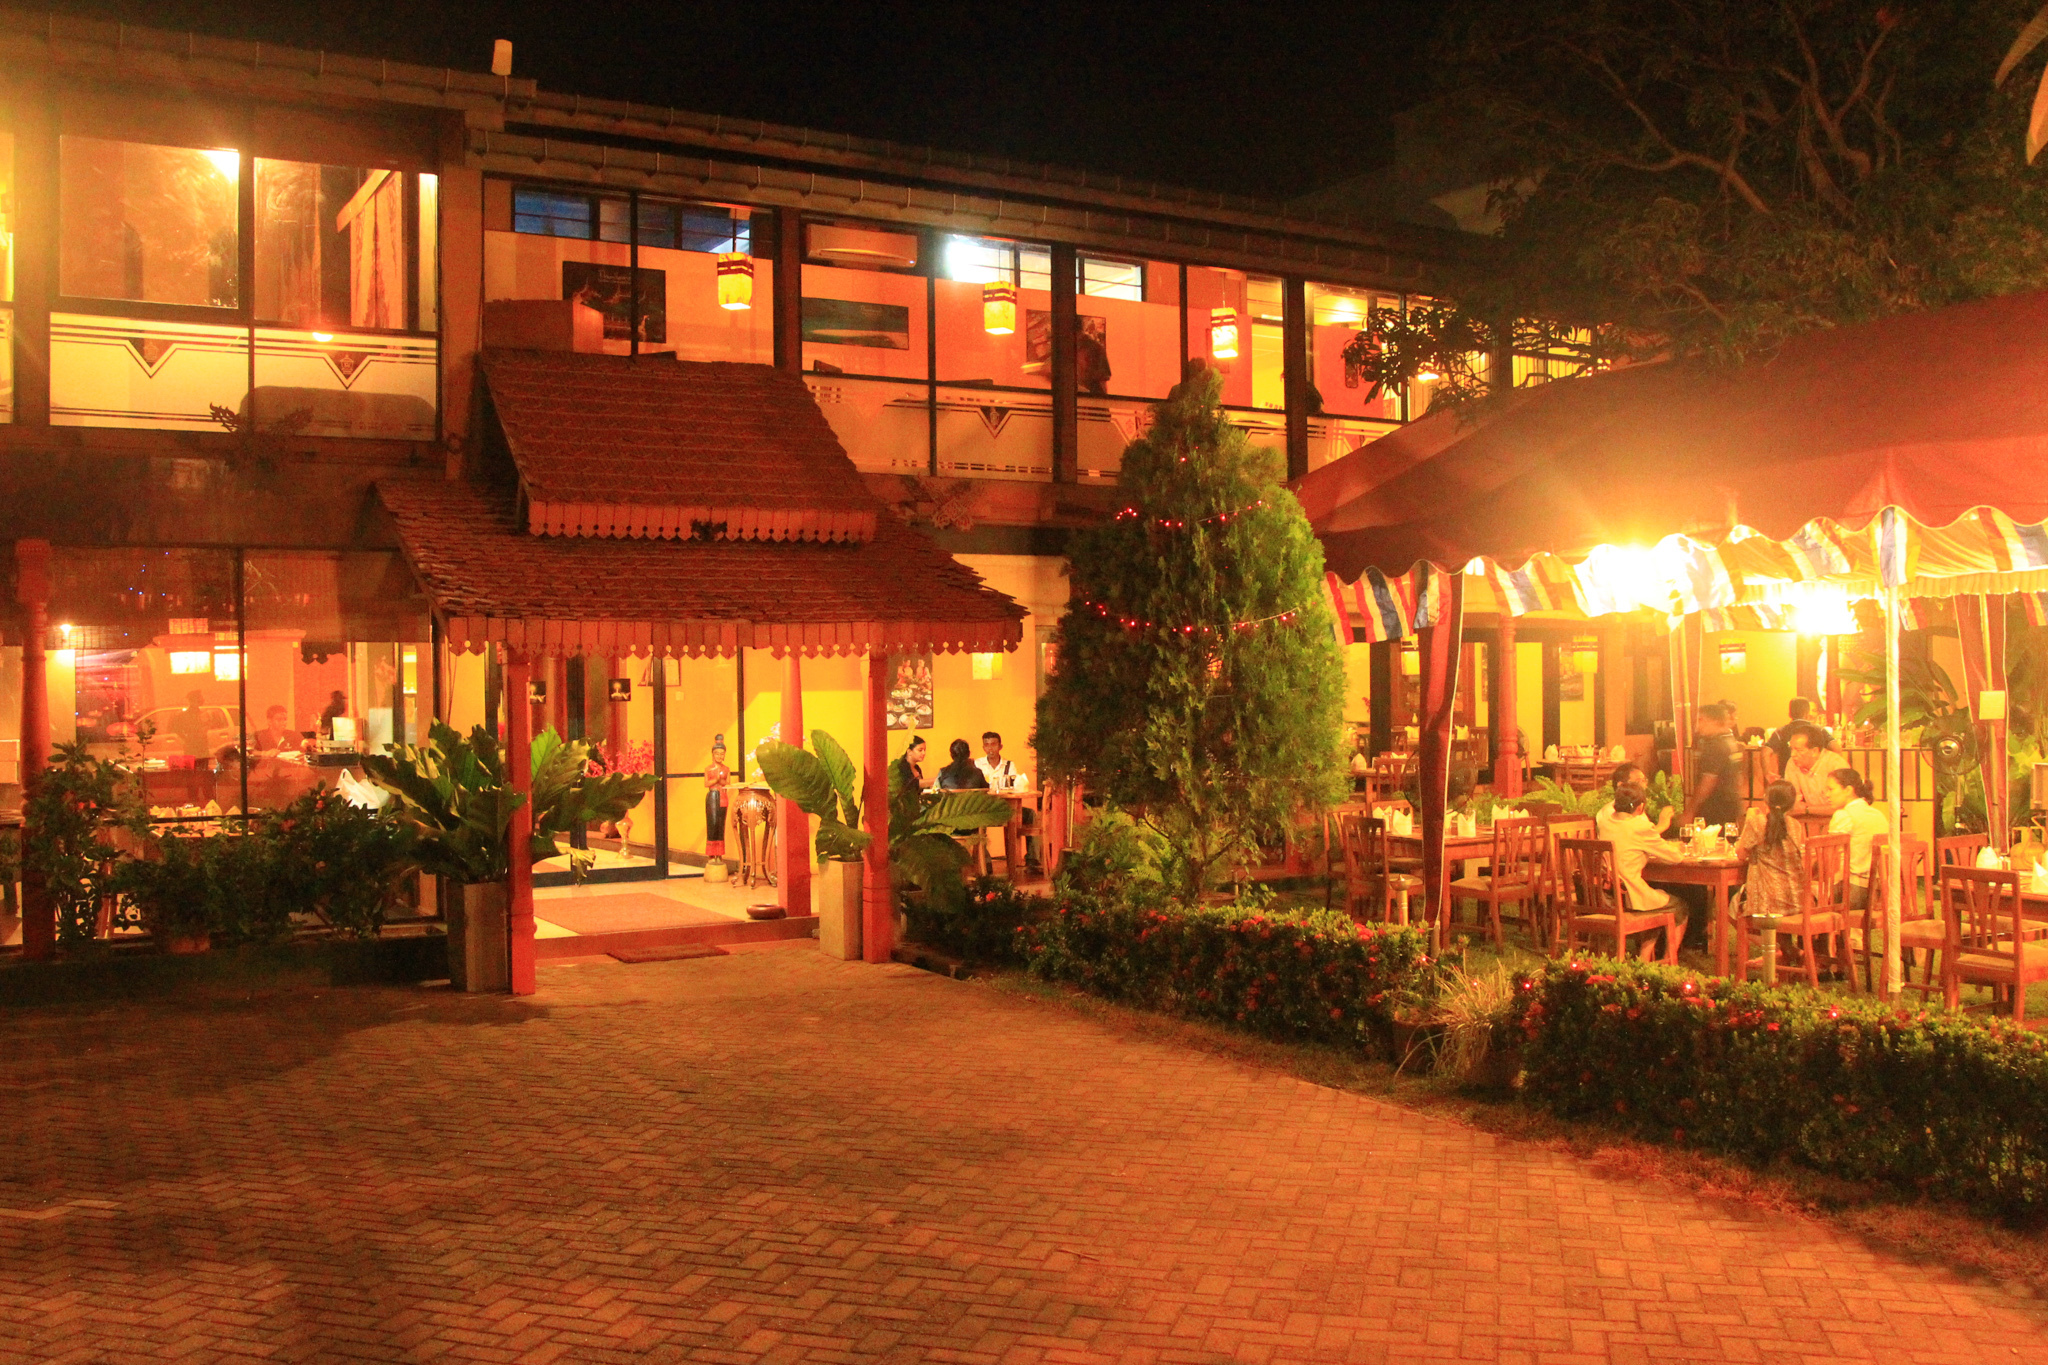 Siam House is a restaurant in Colombo